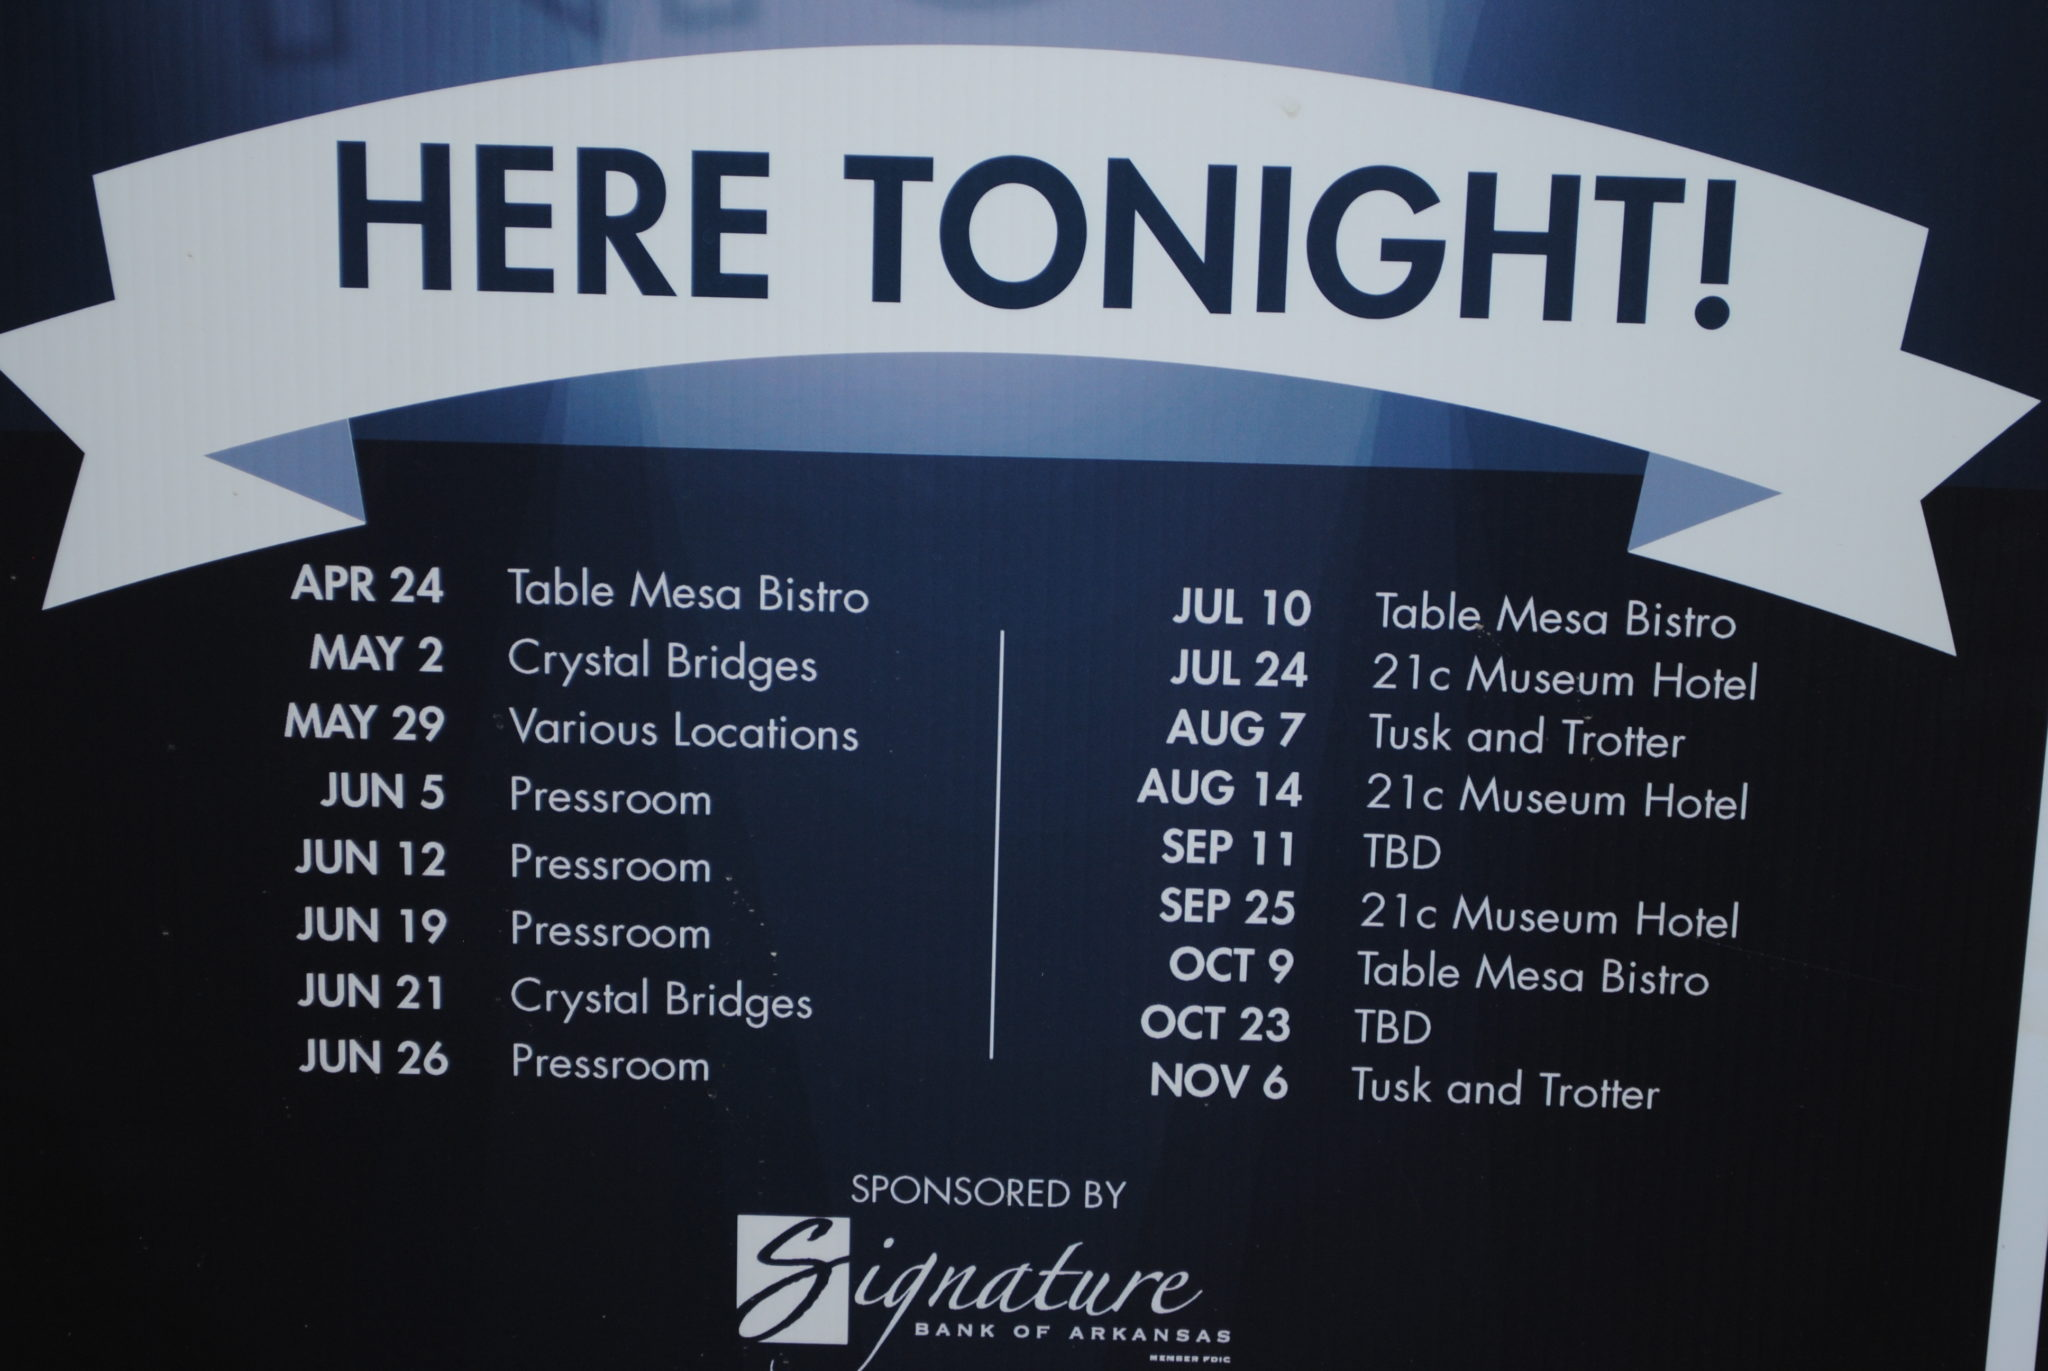 Notes at Night: Downtown Bentonville's Thursday nights filled with music